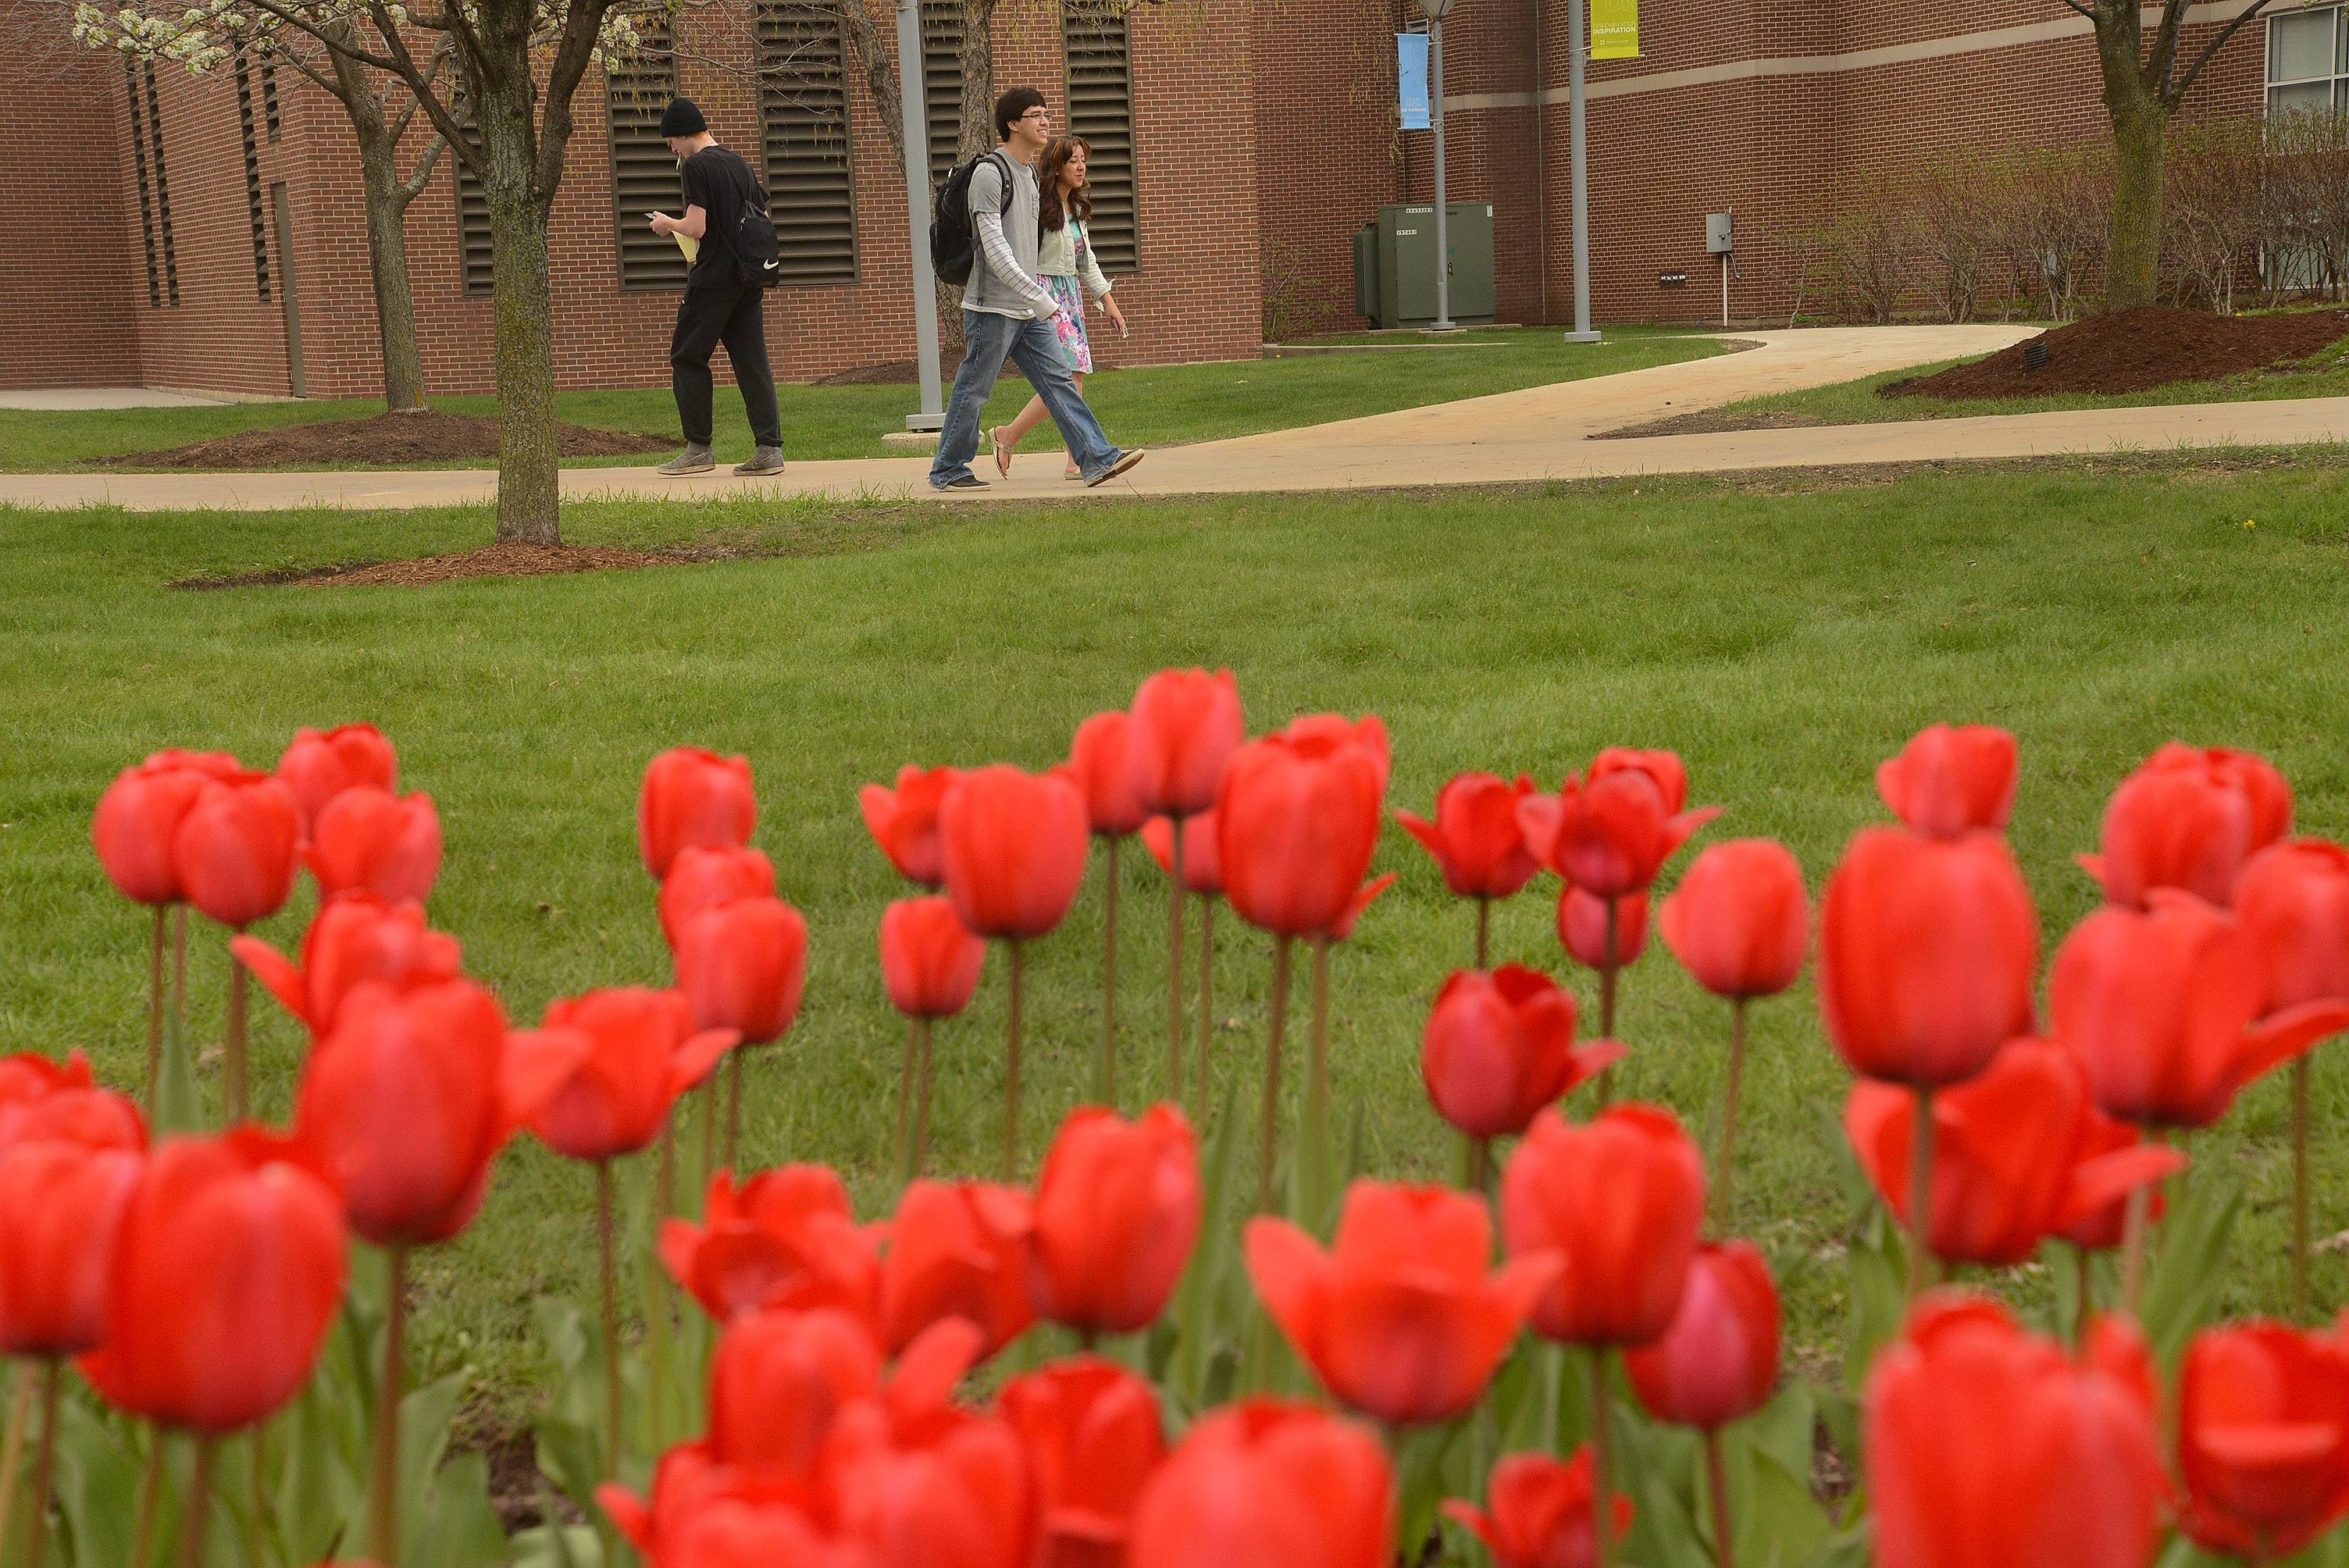 Kyle Scott and Amanda Elfar enjoy the warm weather while strolling from classes at Harper College in Palatine.